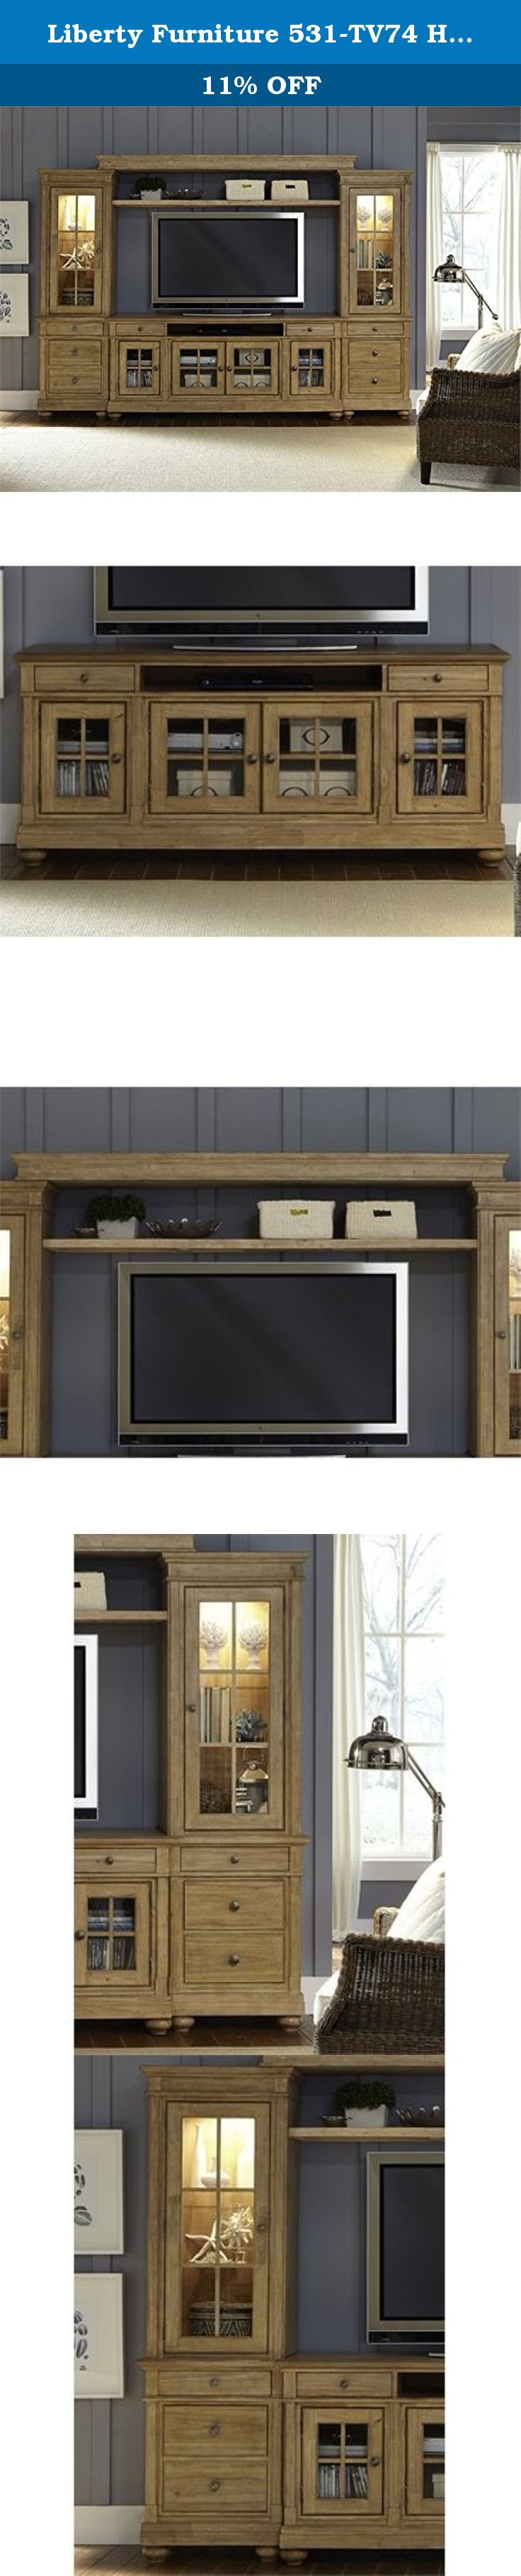 Classic flame belmont 60 quot tv stand with electric fireplace - Liberty Furniture 531 Tv74 Harbor View Entertainment Tv Stand 74 X 19